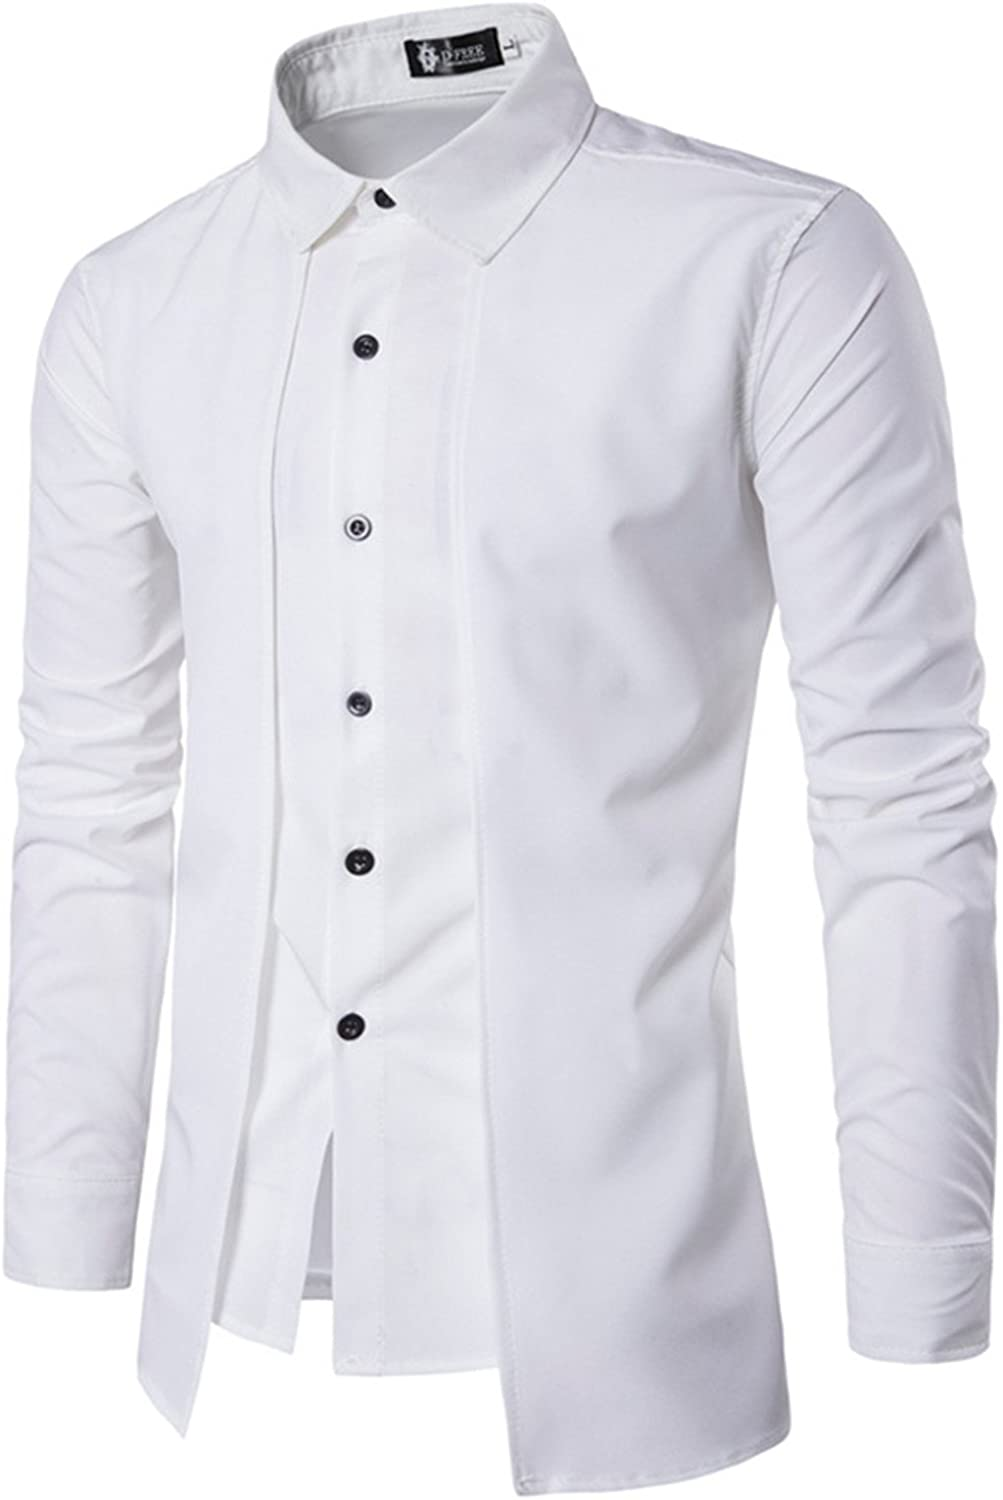 LOKOUO MenS Shirts NEW Long-Sleeved Casual Fake Two Pieces Solid Arrival MenS Shirts XXL